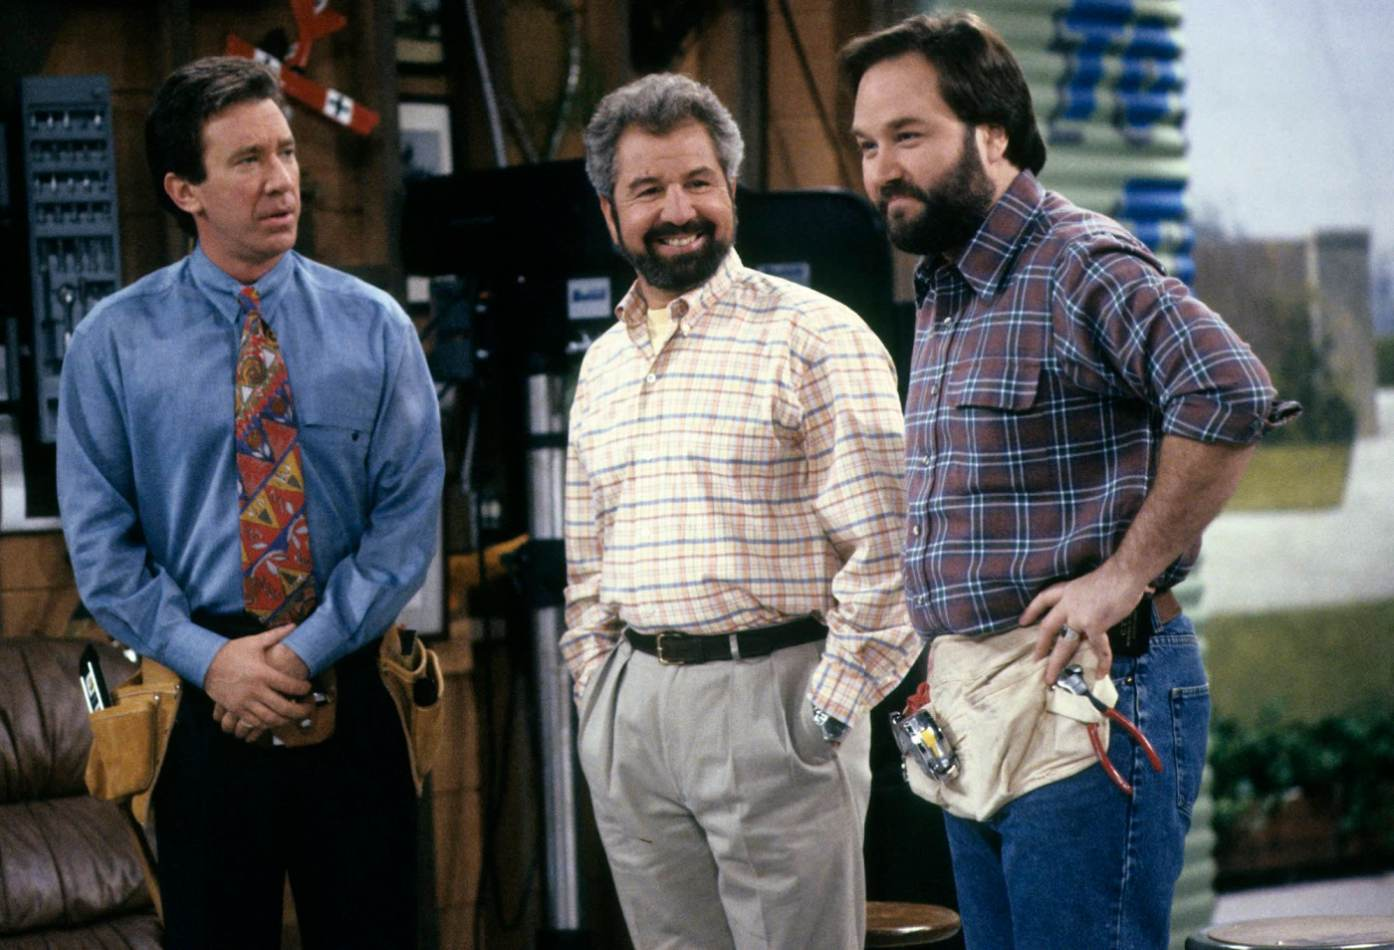 The Original Handyman Bob Vila On Finding Success By Accident